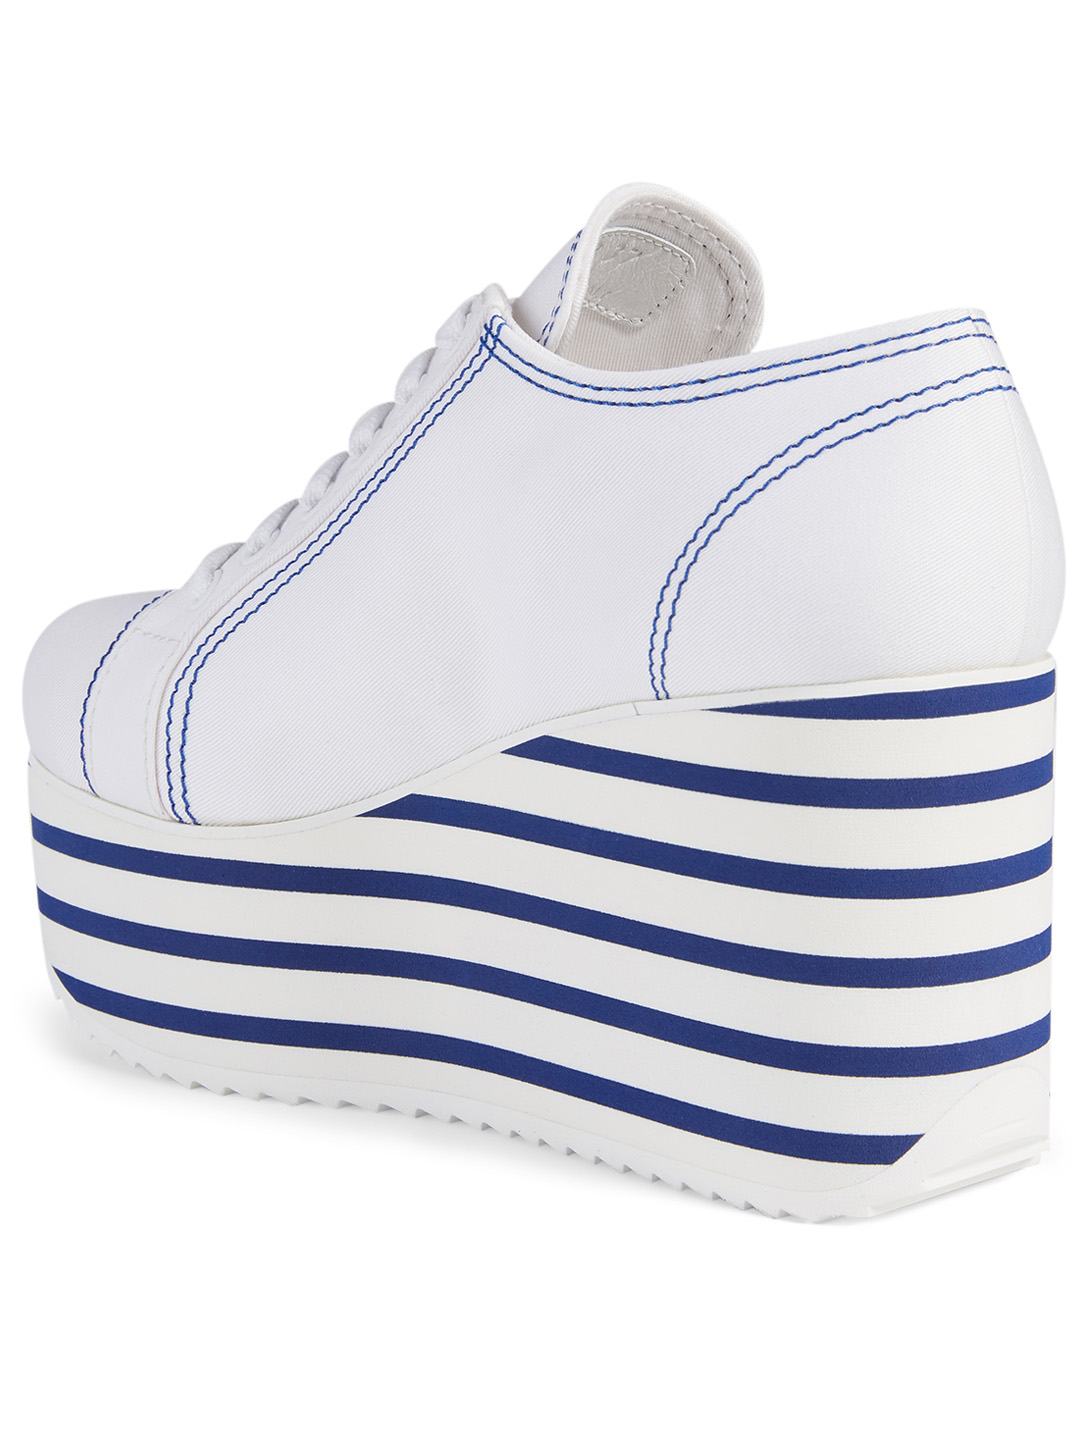 MIU MIU Canvas Platform Sneakers With Striped Sole Women's White